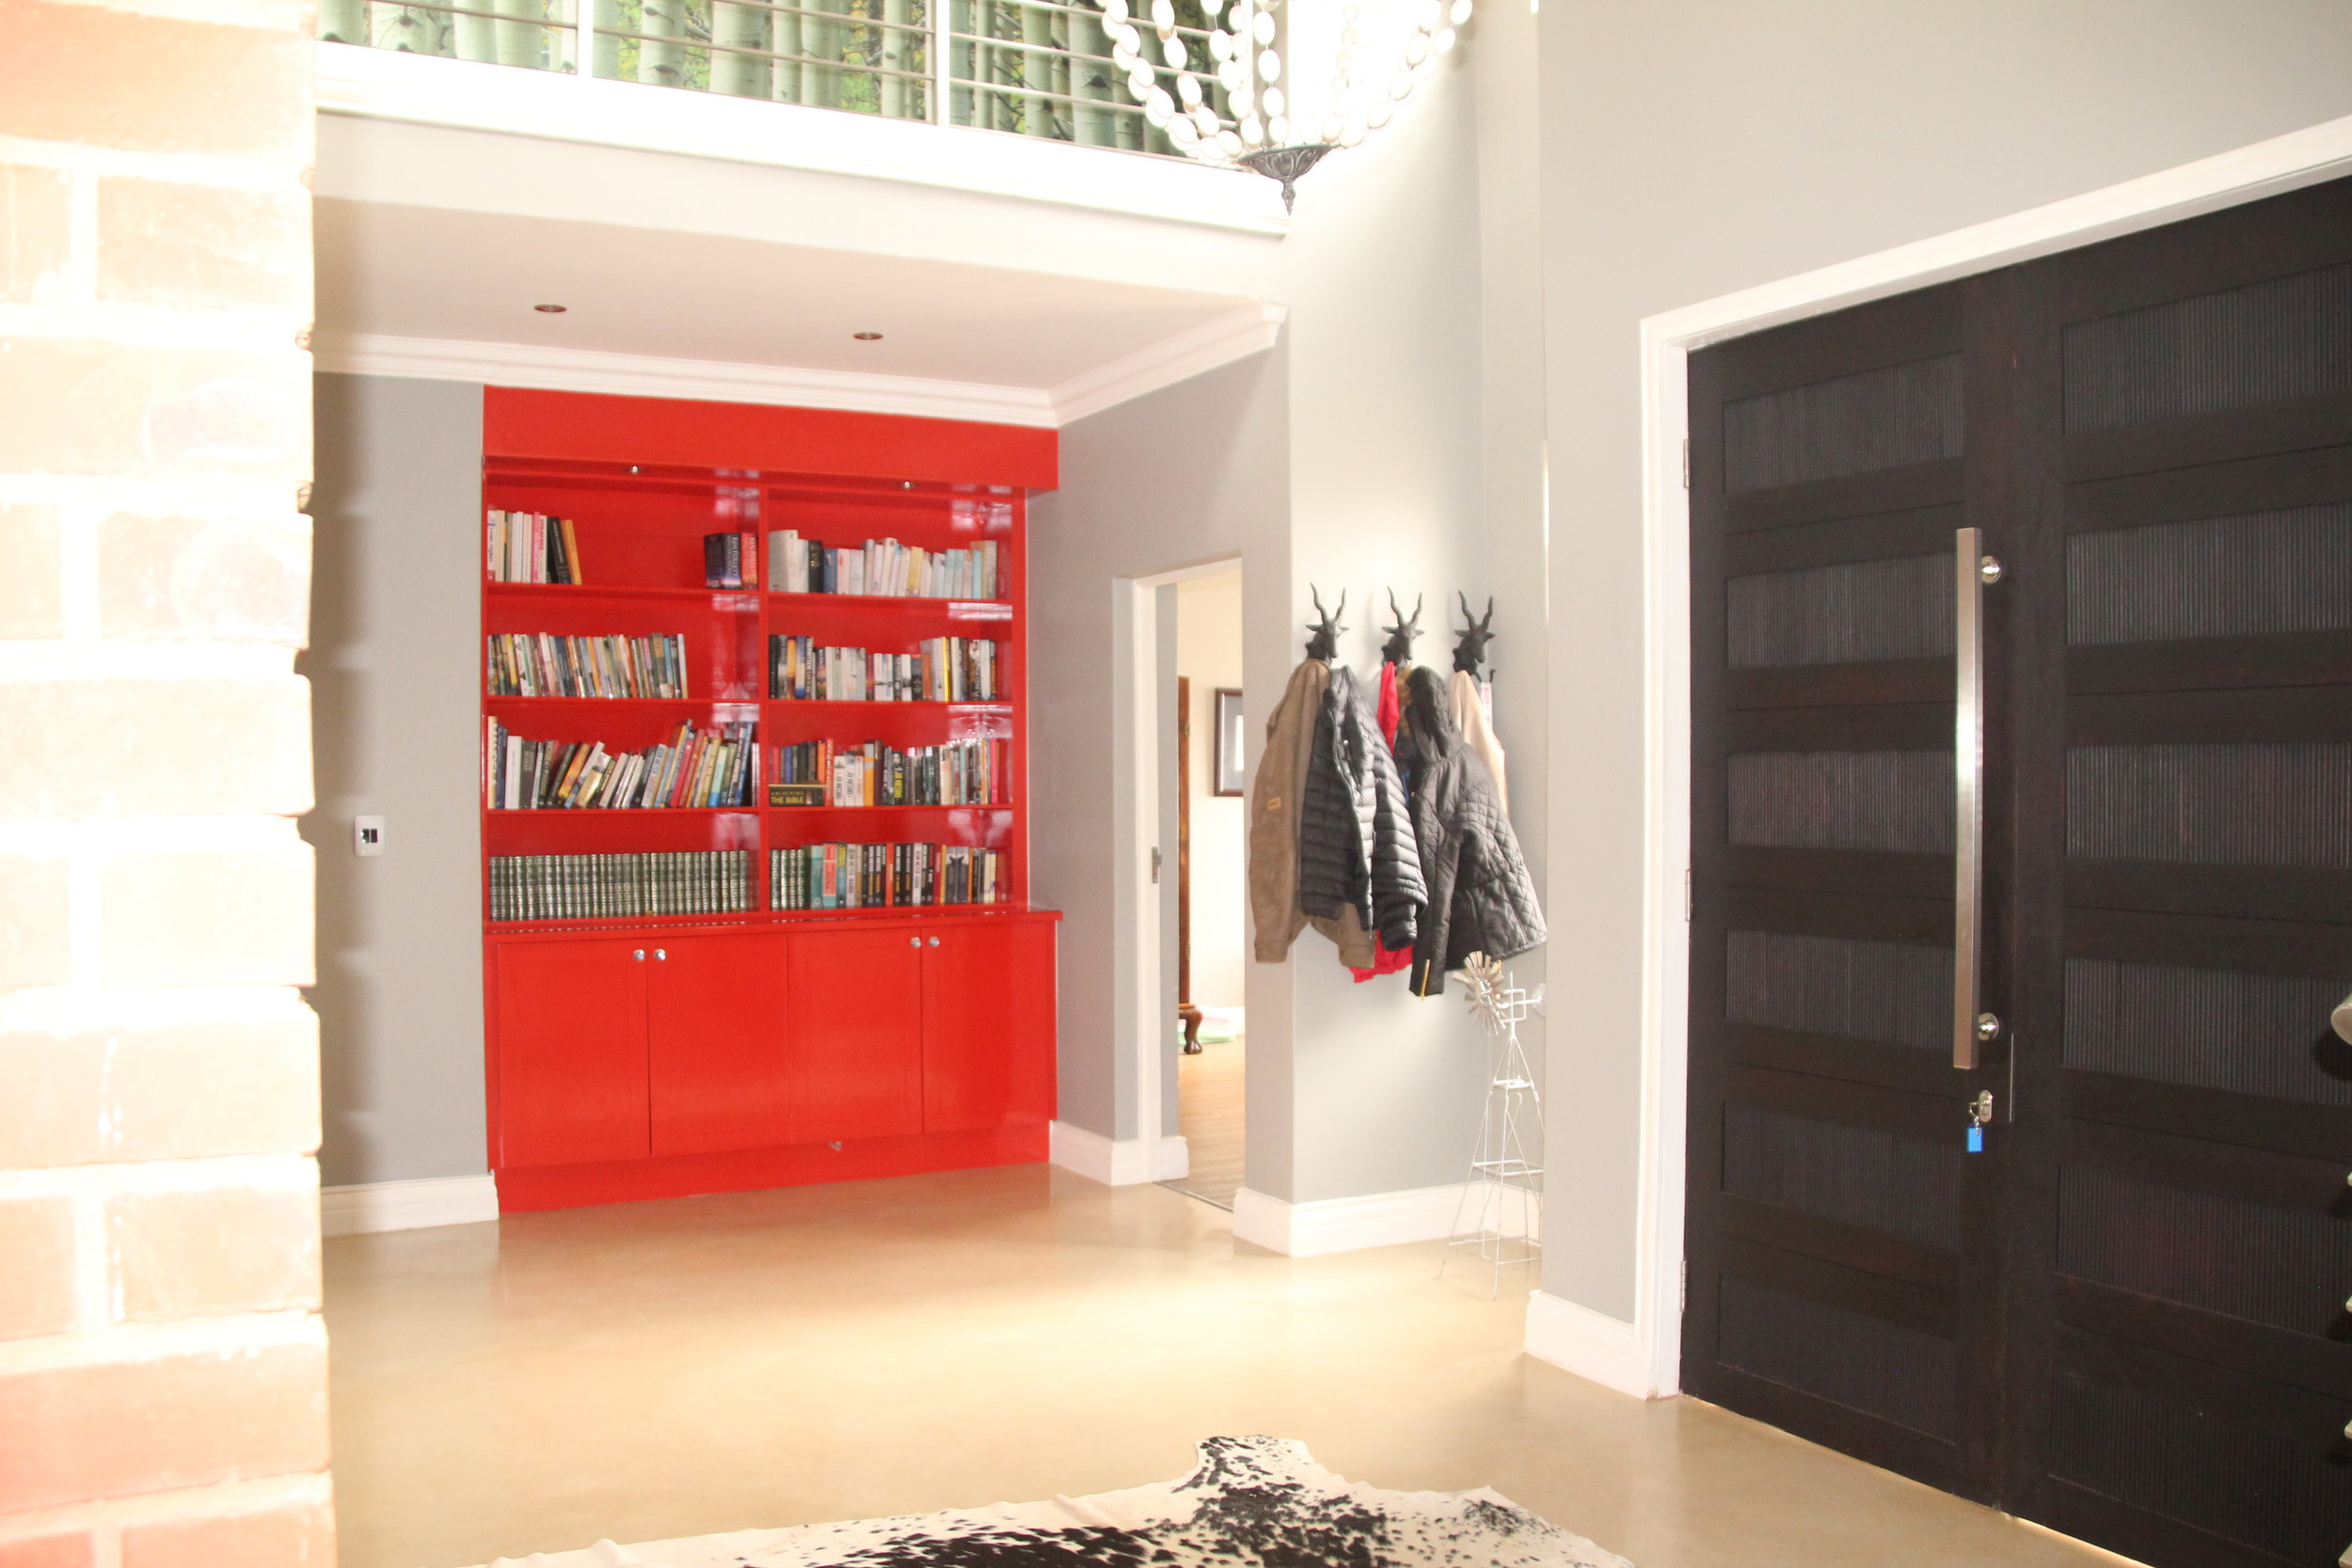 4 Entrance Hall with Red Bookshelf.JPG